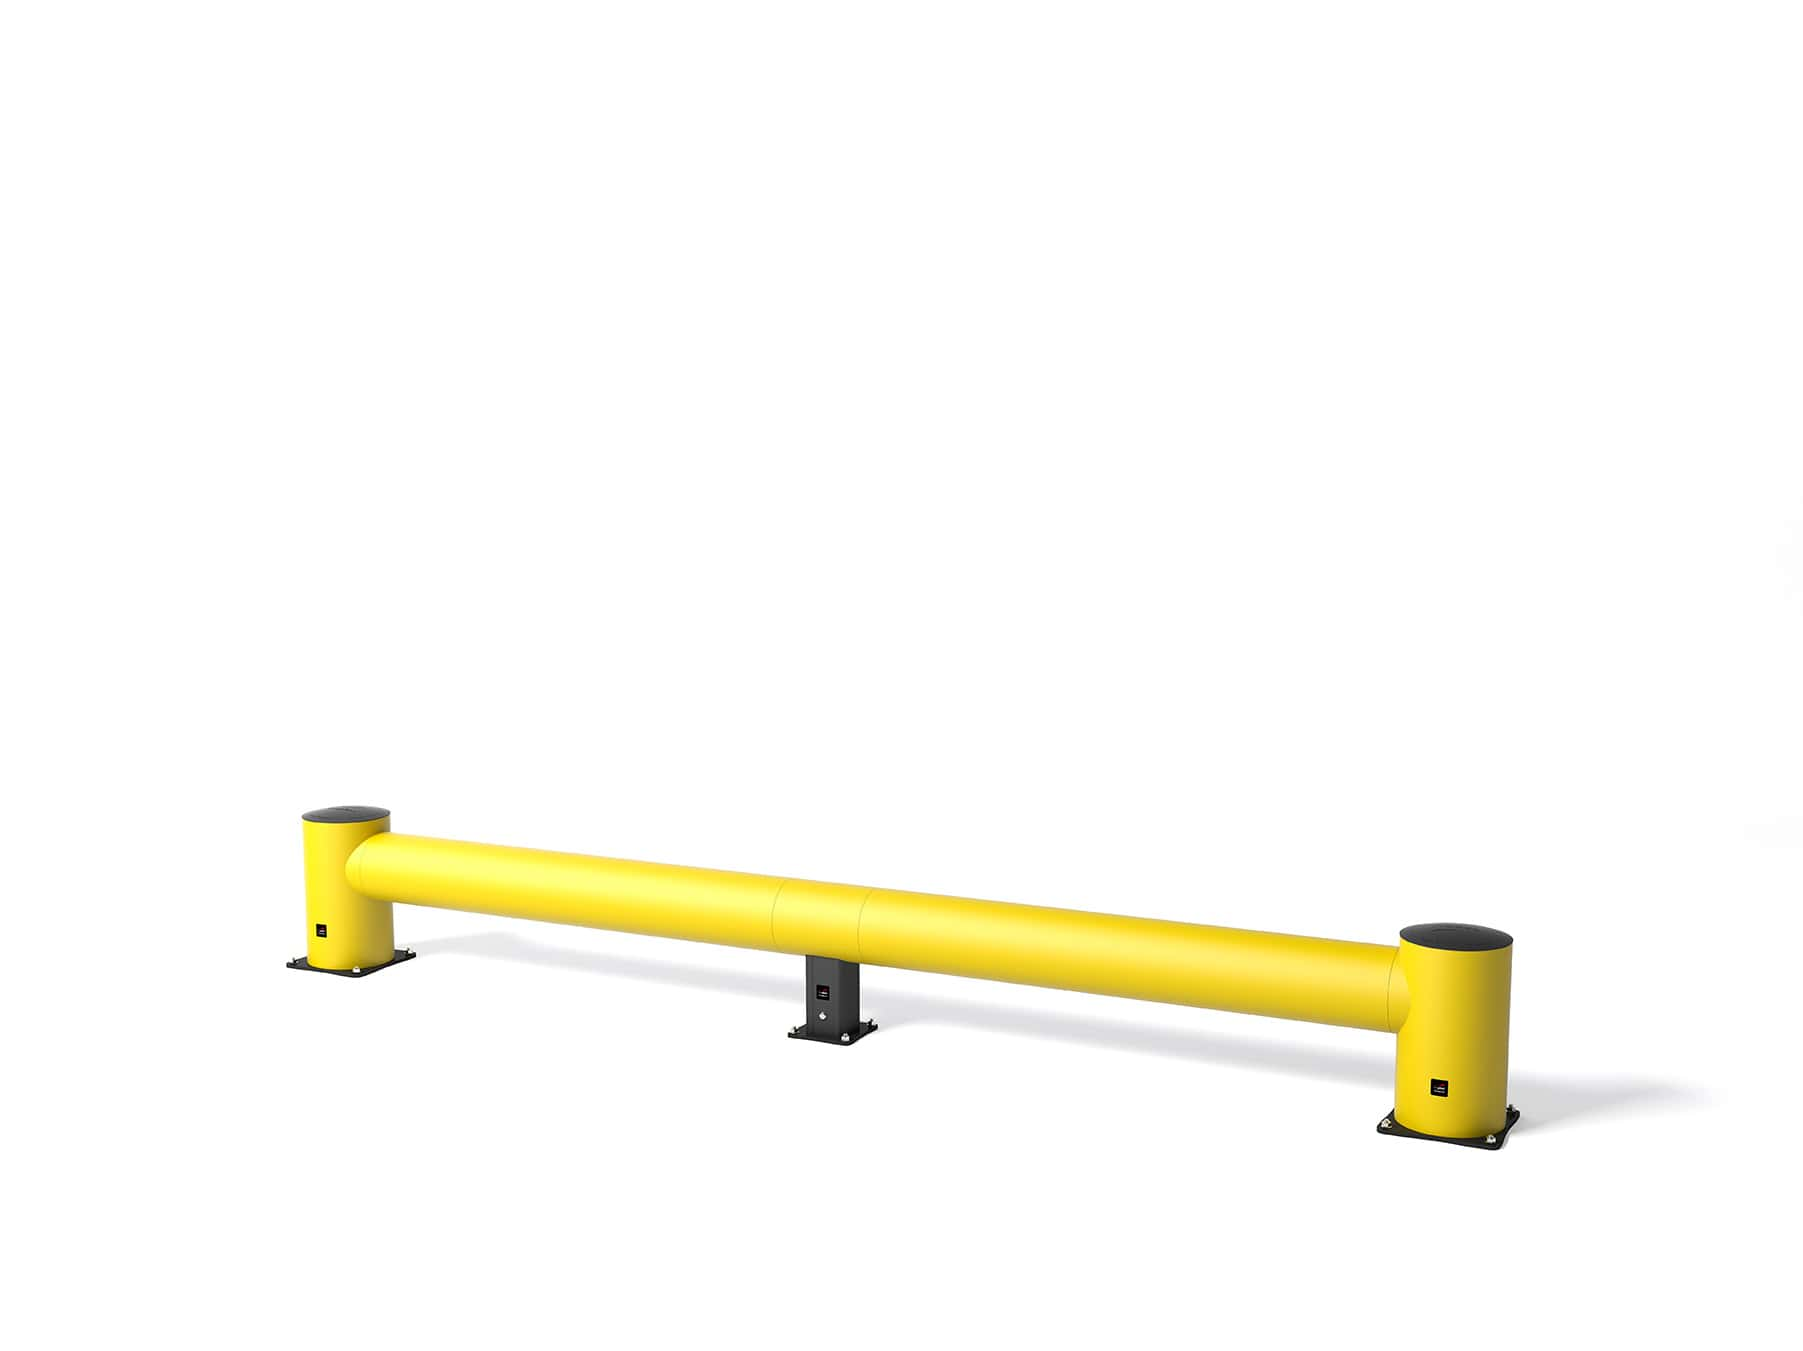 flex-impact-traffic-safety-barrier-tb_400-min.jpg